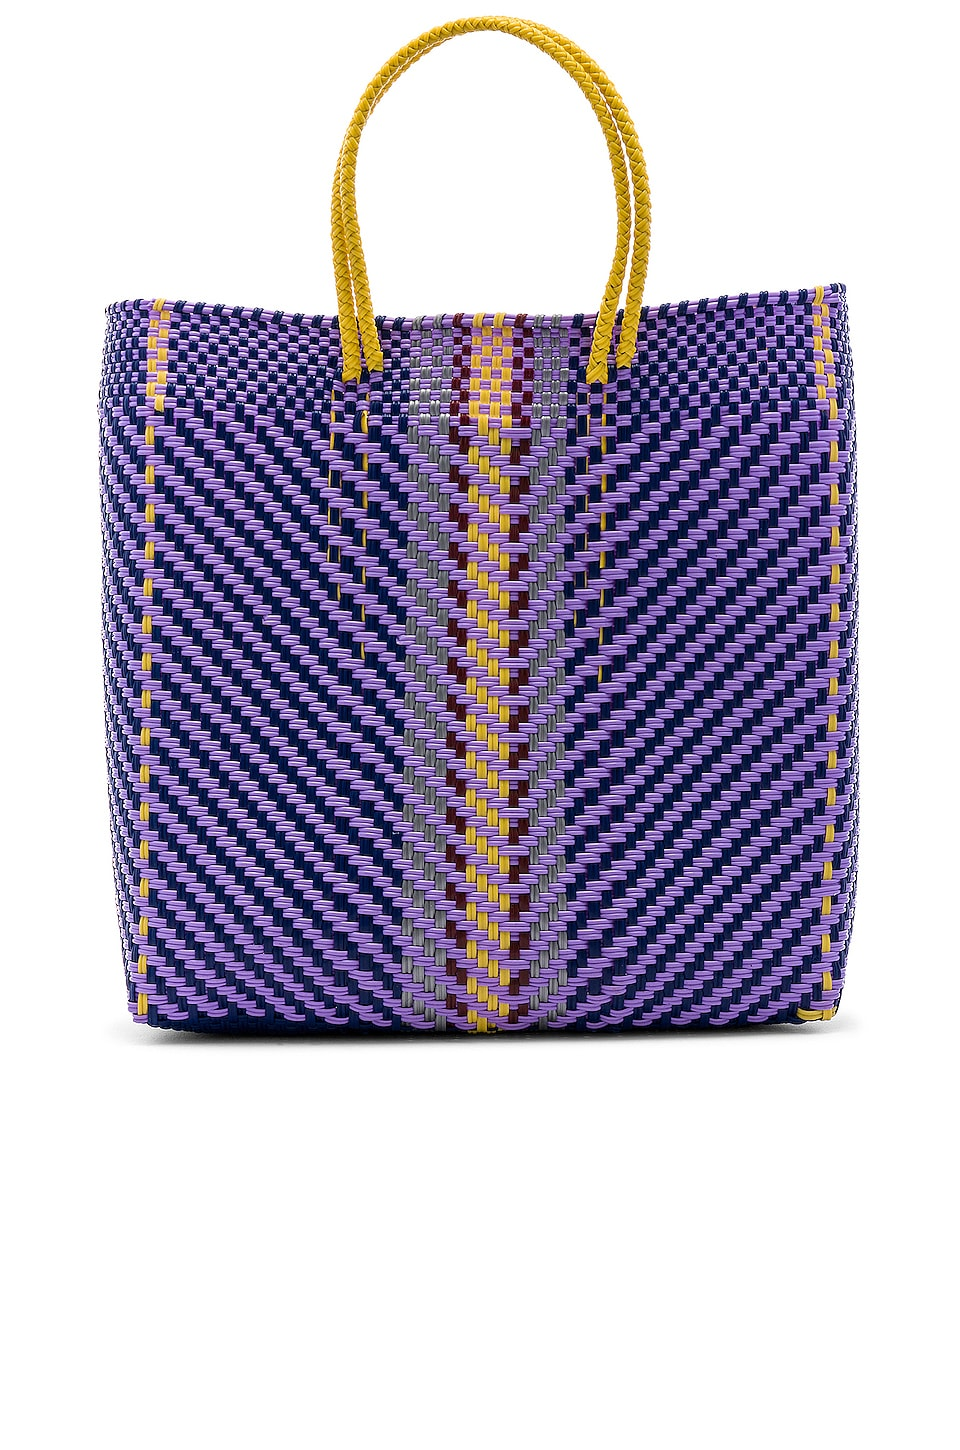 House of Harlow 1960 BOLSO TOTE CENOTE